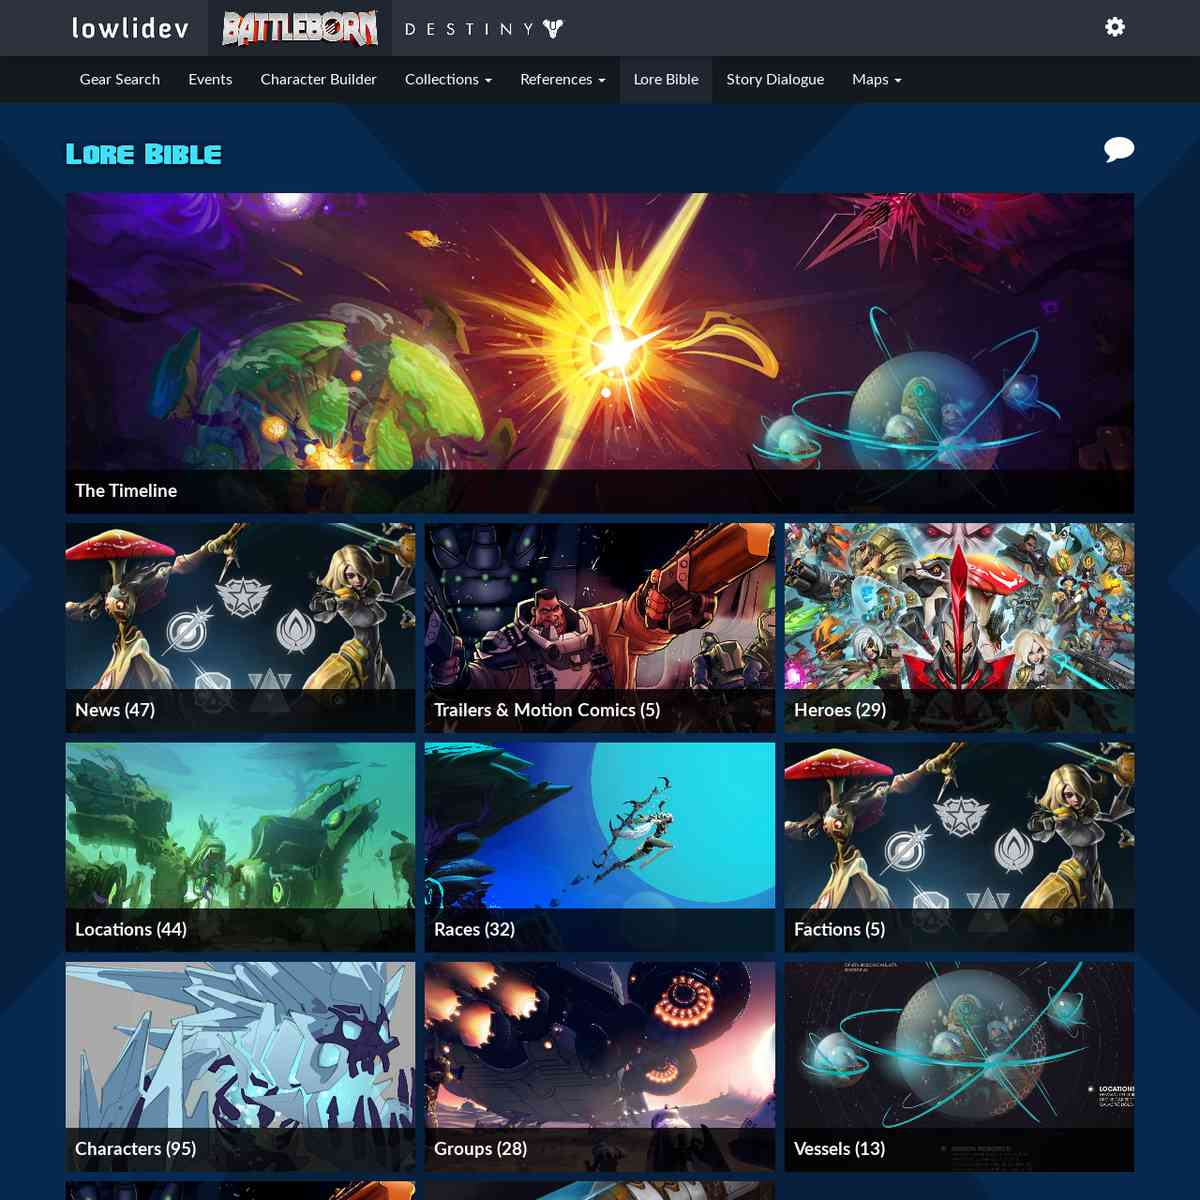 Lore Bible - Battleborn | lowlidev